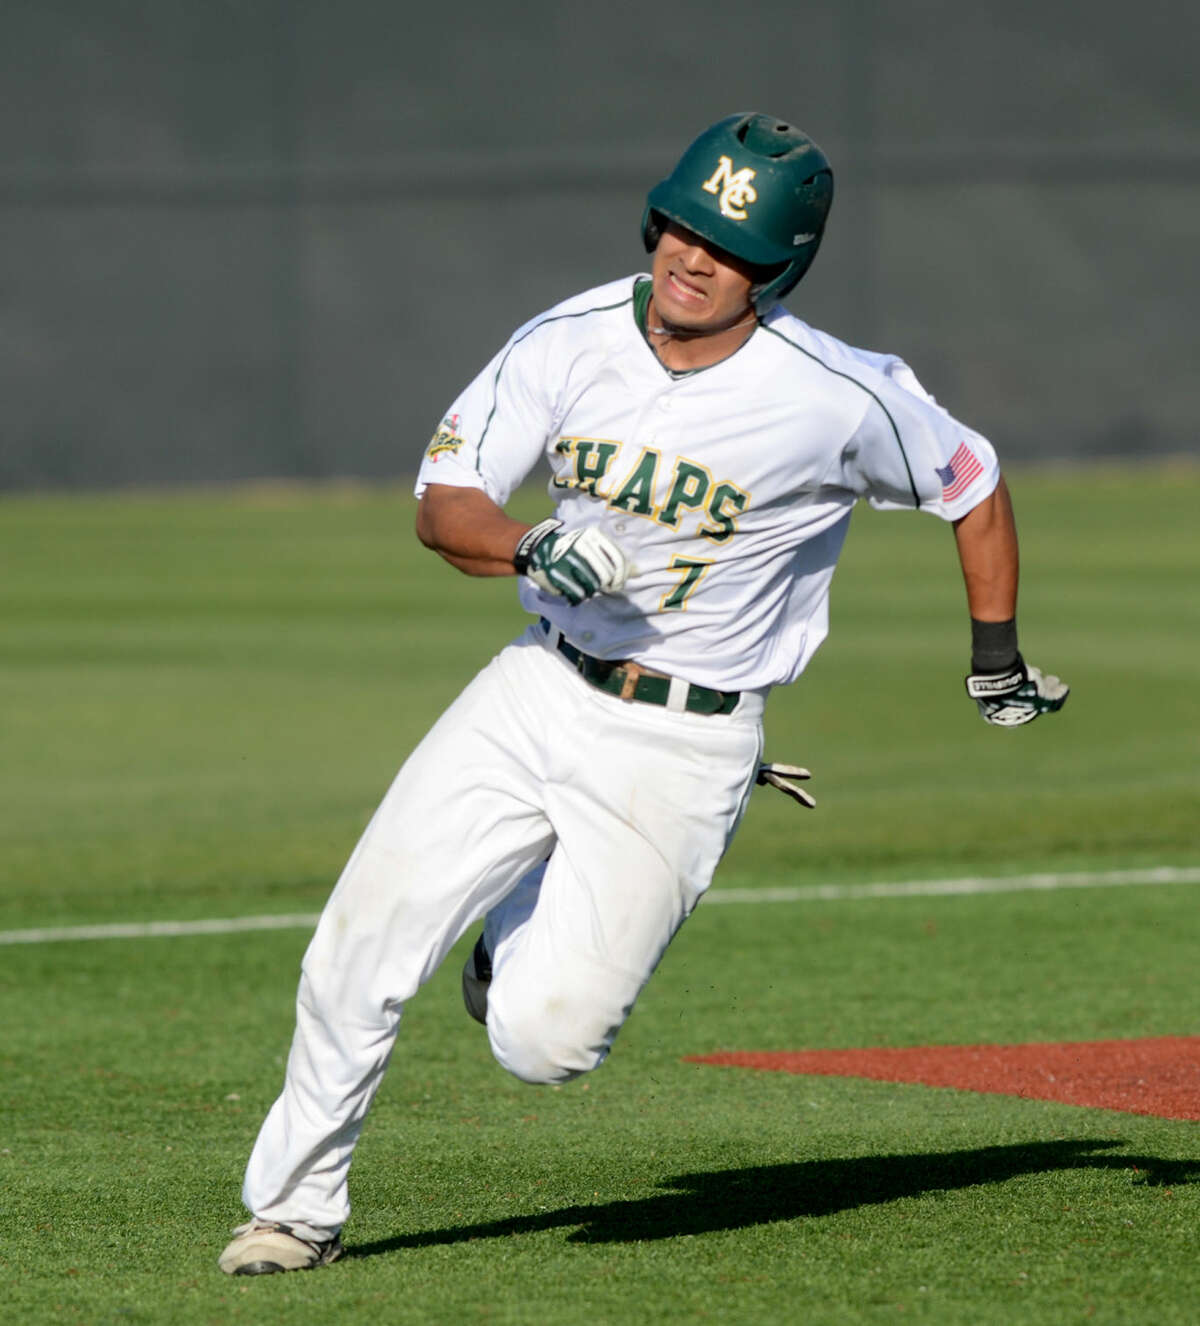 Midland College's Josh Narvaiz runs the bases after hitting against New Mexico Military Institute on Friday, April 24, 2015, at Christensen Stadium. James Durbin/Reporter-Telegram